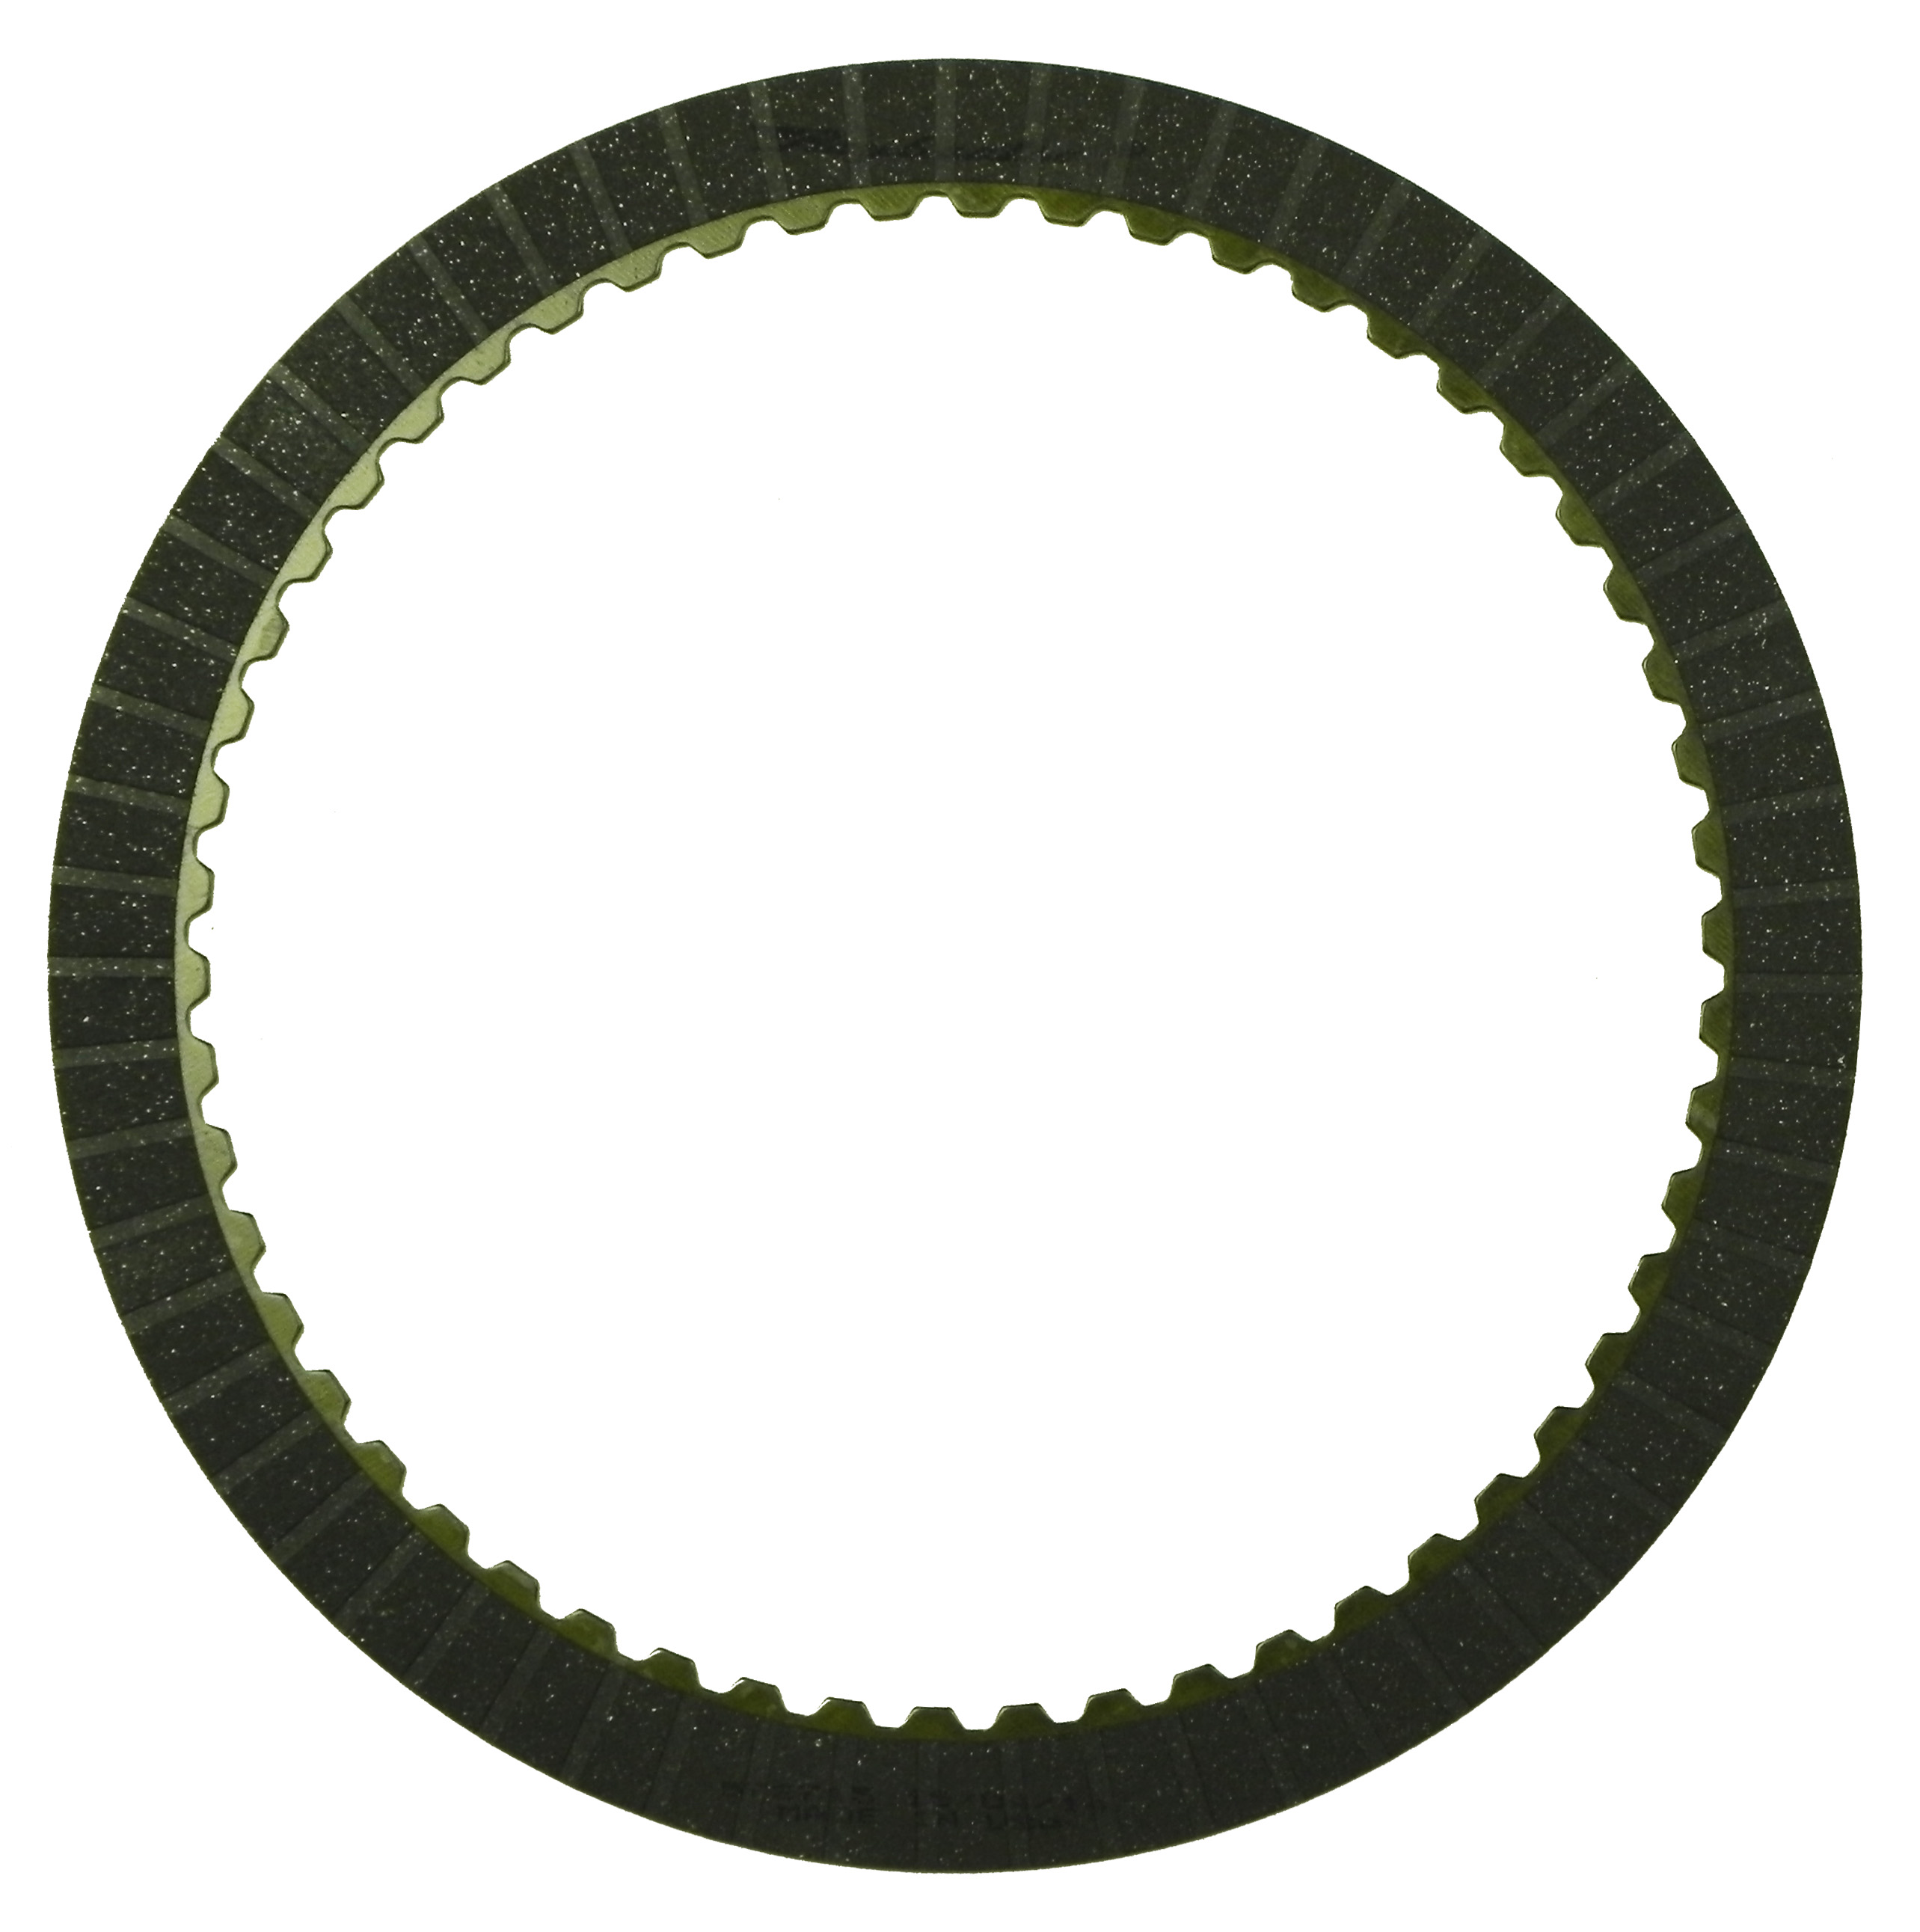 R572715 | 2001-ON Friction Clutch Plate High Energy C3 3, 5 Reverse High Energy